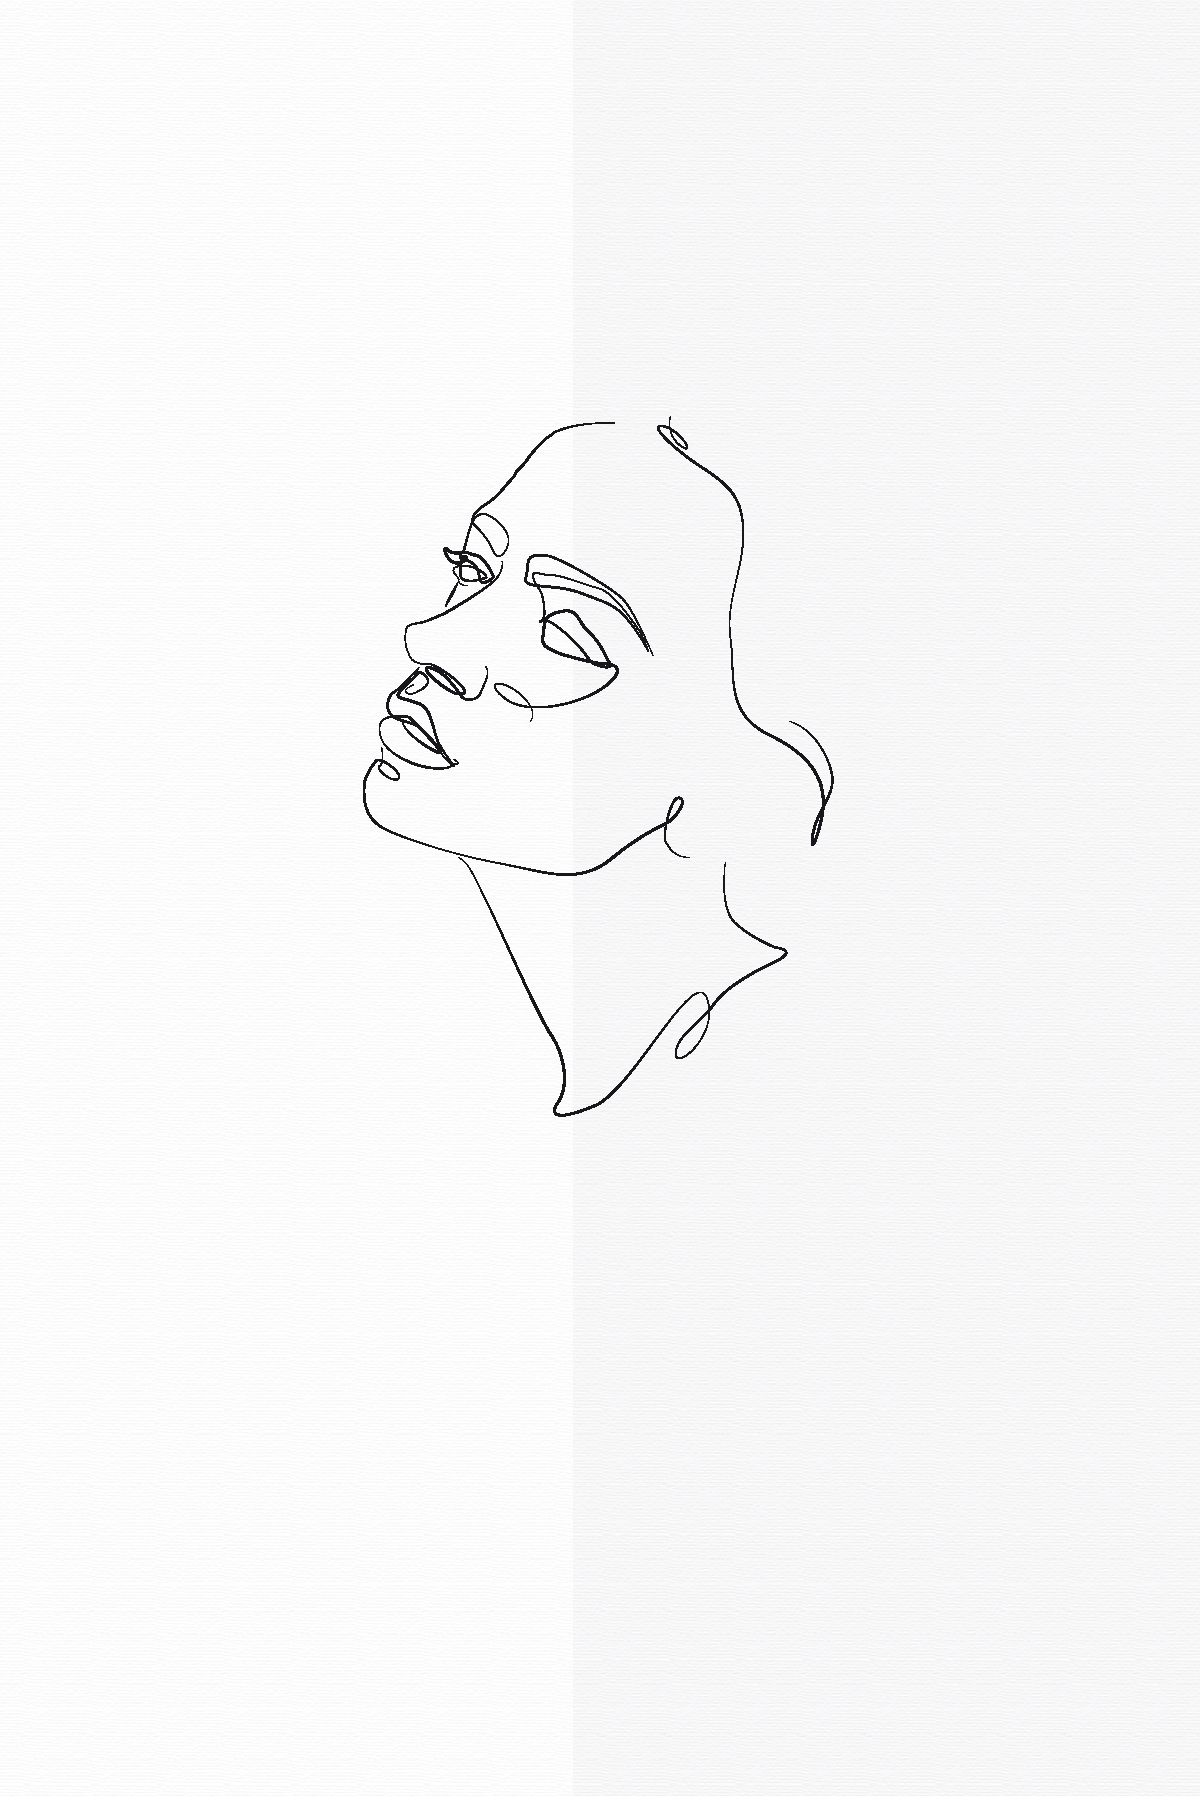 Minimalist Drawings Beautiful Line Art And Simple Sketches In 2020 Minimalist Wallpaper Minimalist Drawing Abstract Line Art